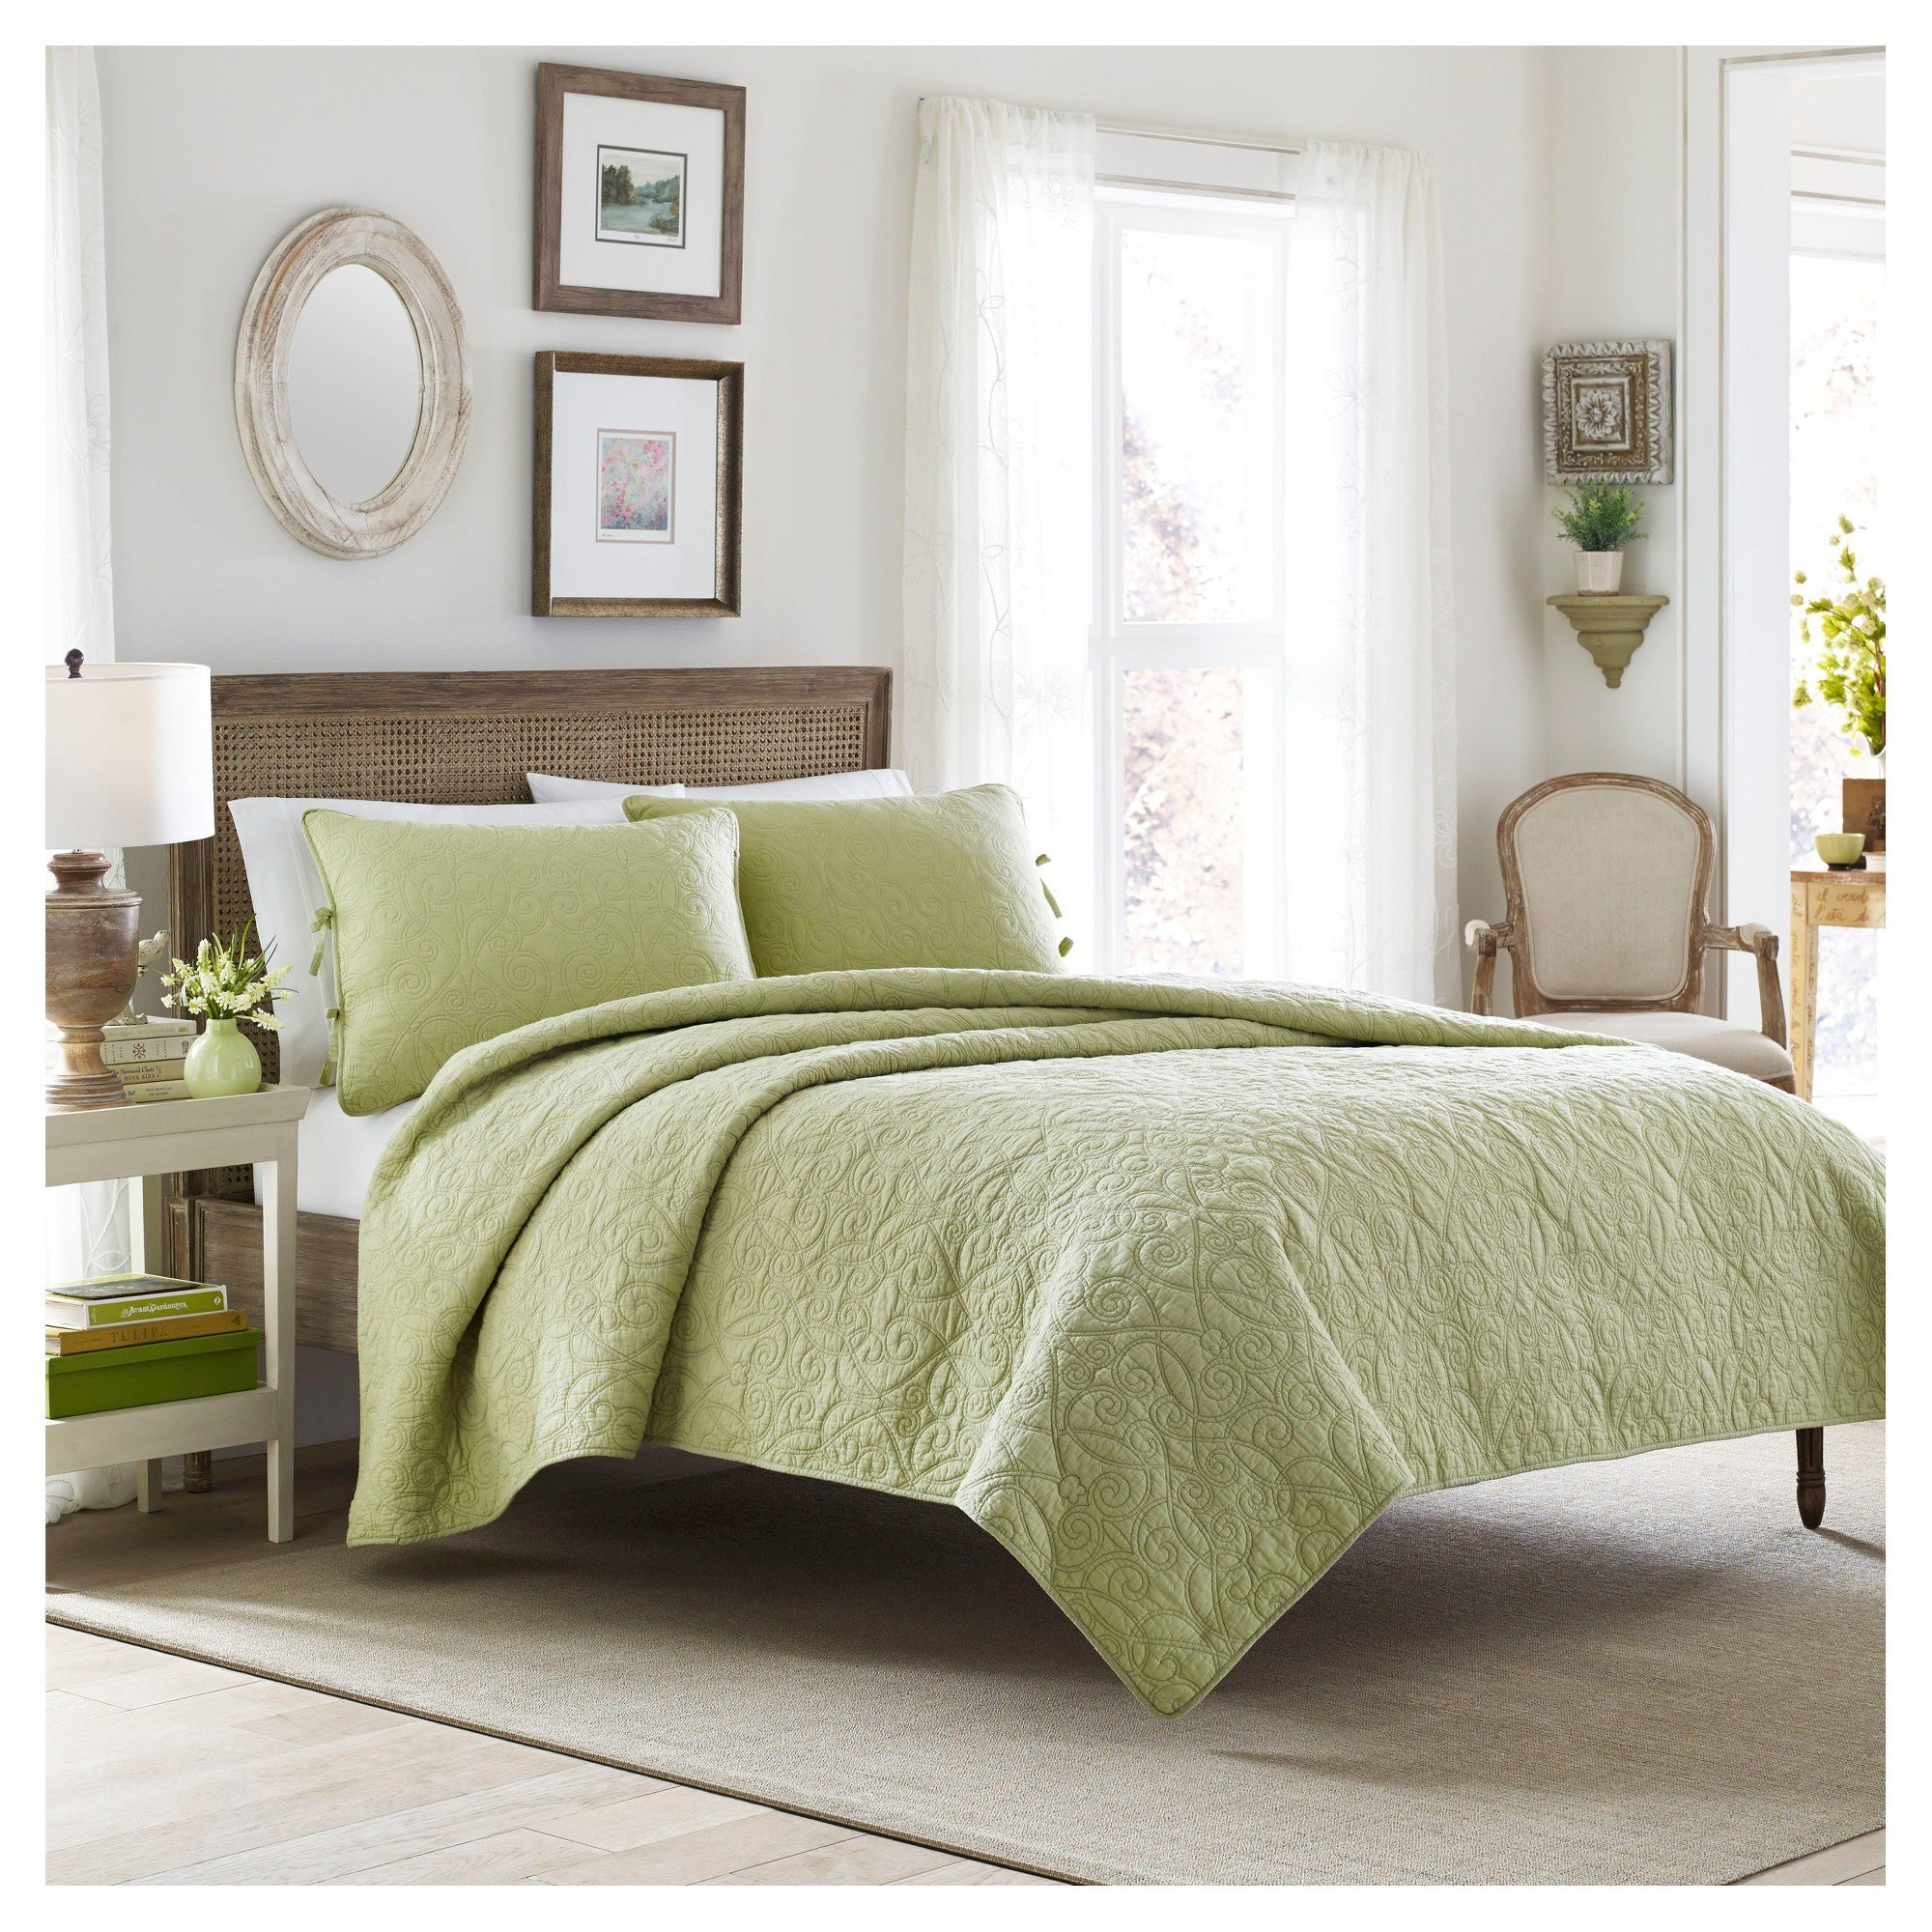 Laura ashley Bedroom Set Best Of Felicity Quilt and Sham Set Full Queen Light Green Laura